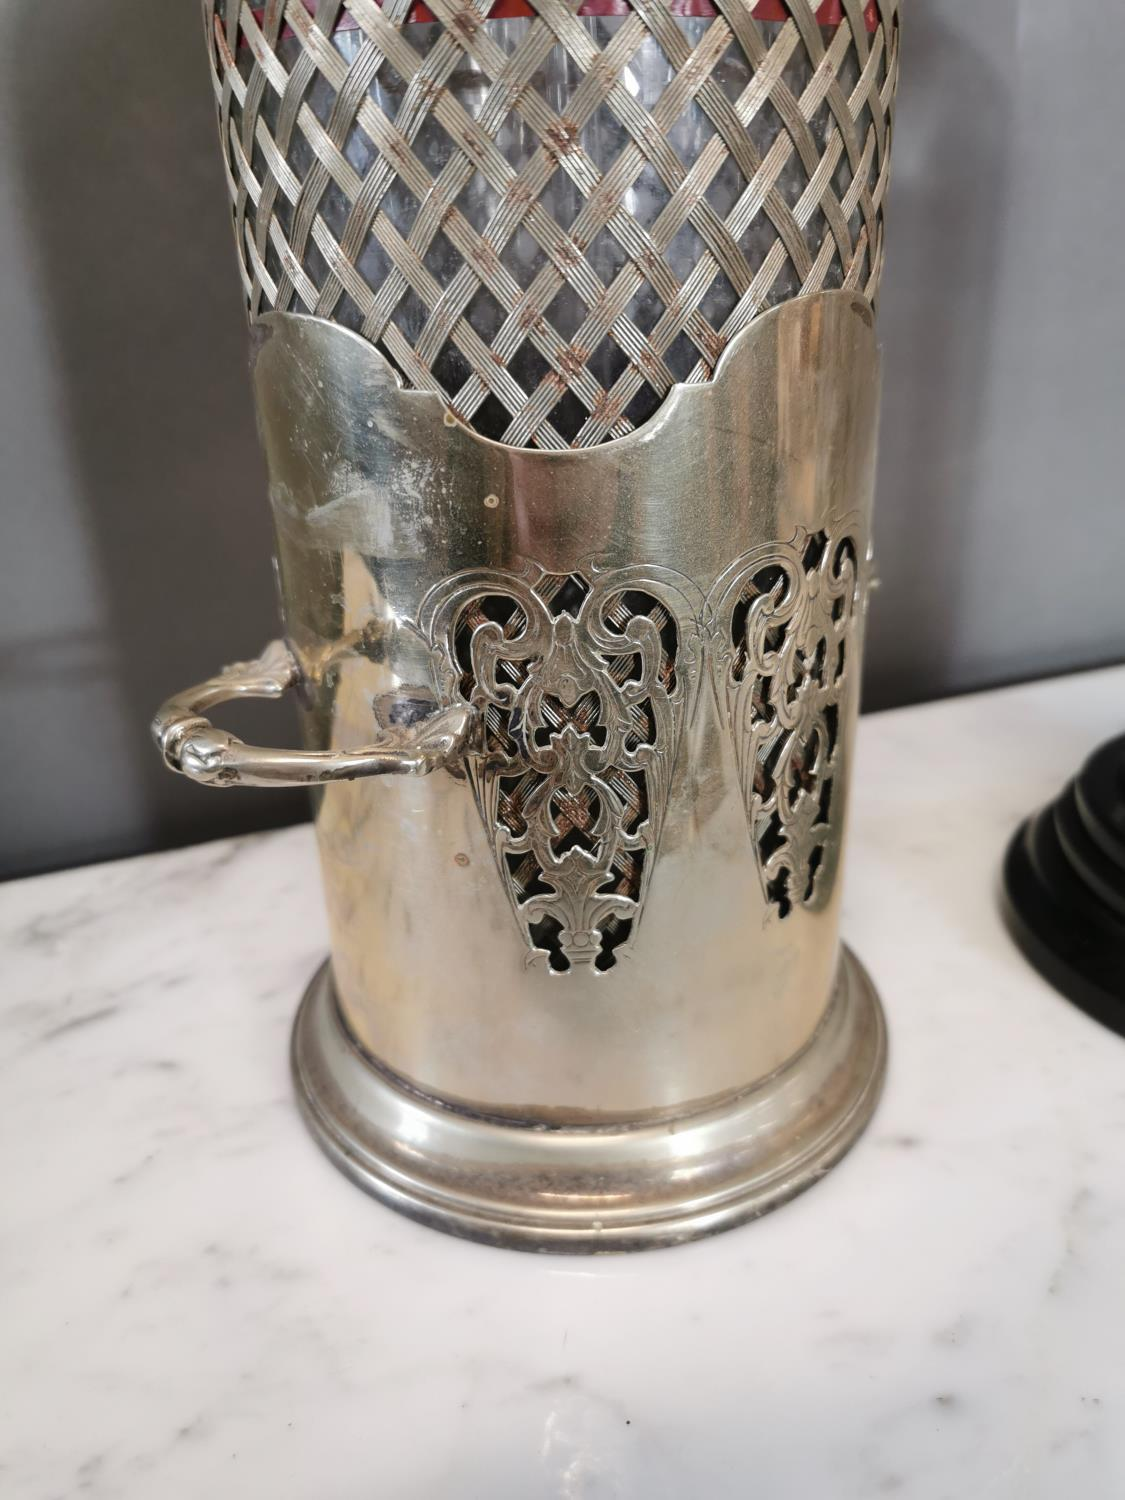 Early 20th. C. silverplated syphon - Image 2 of 3